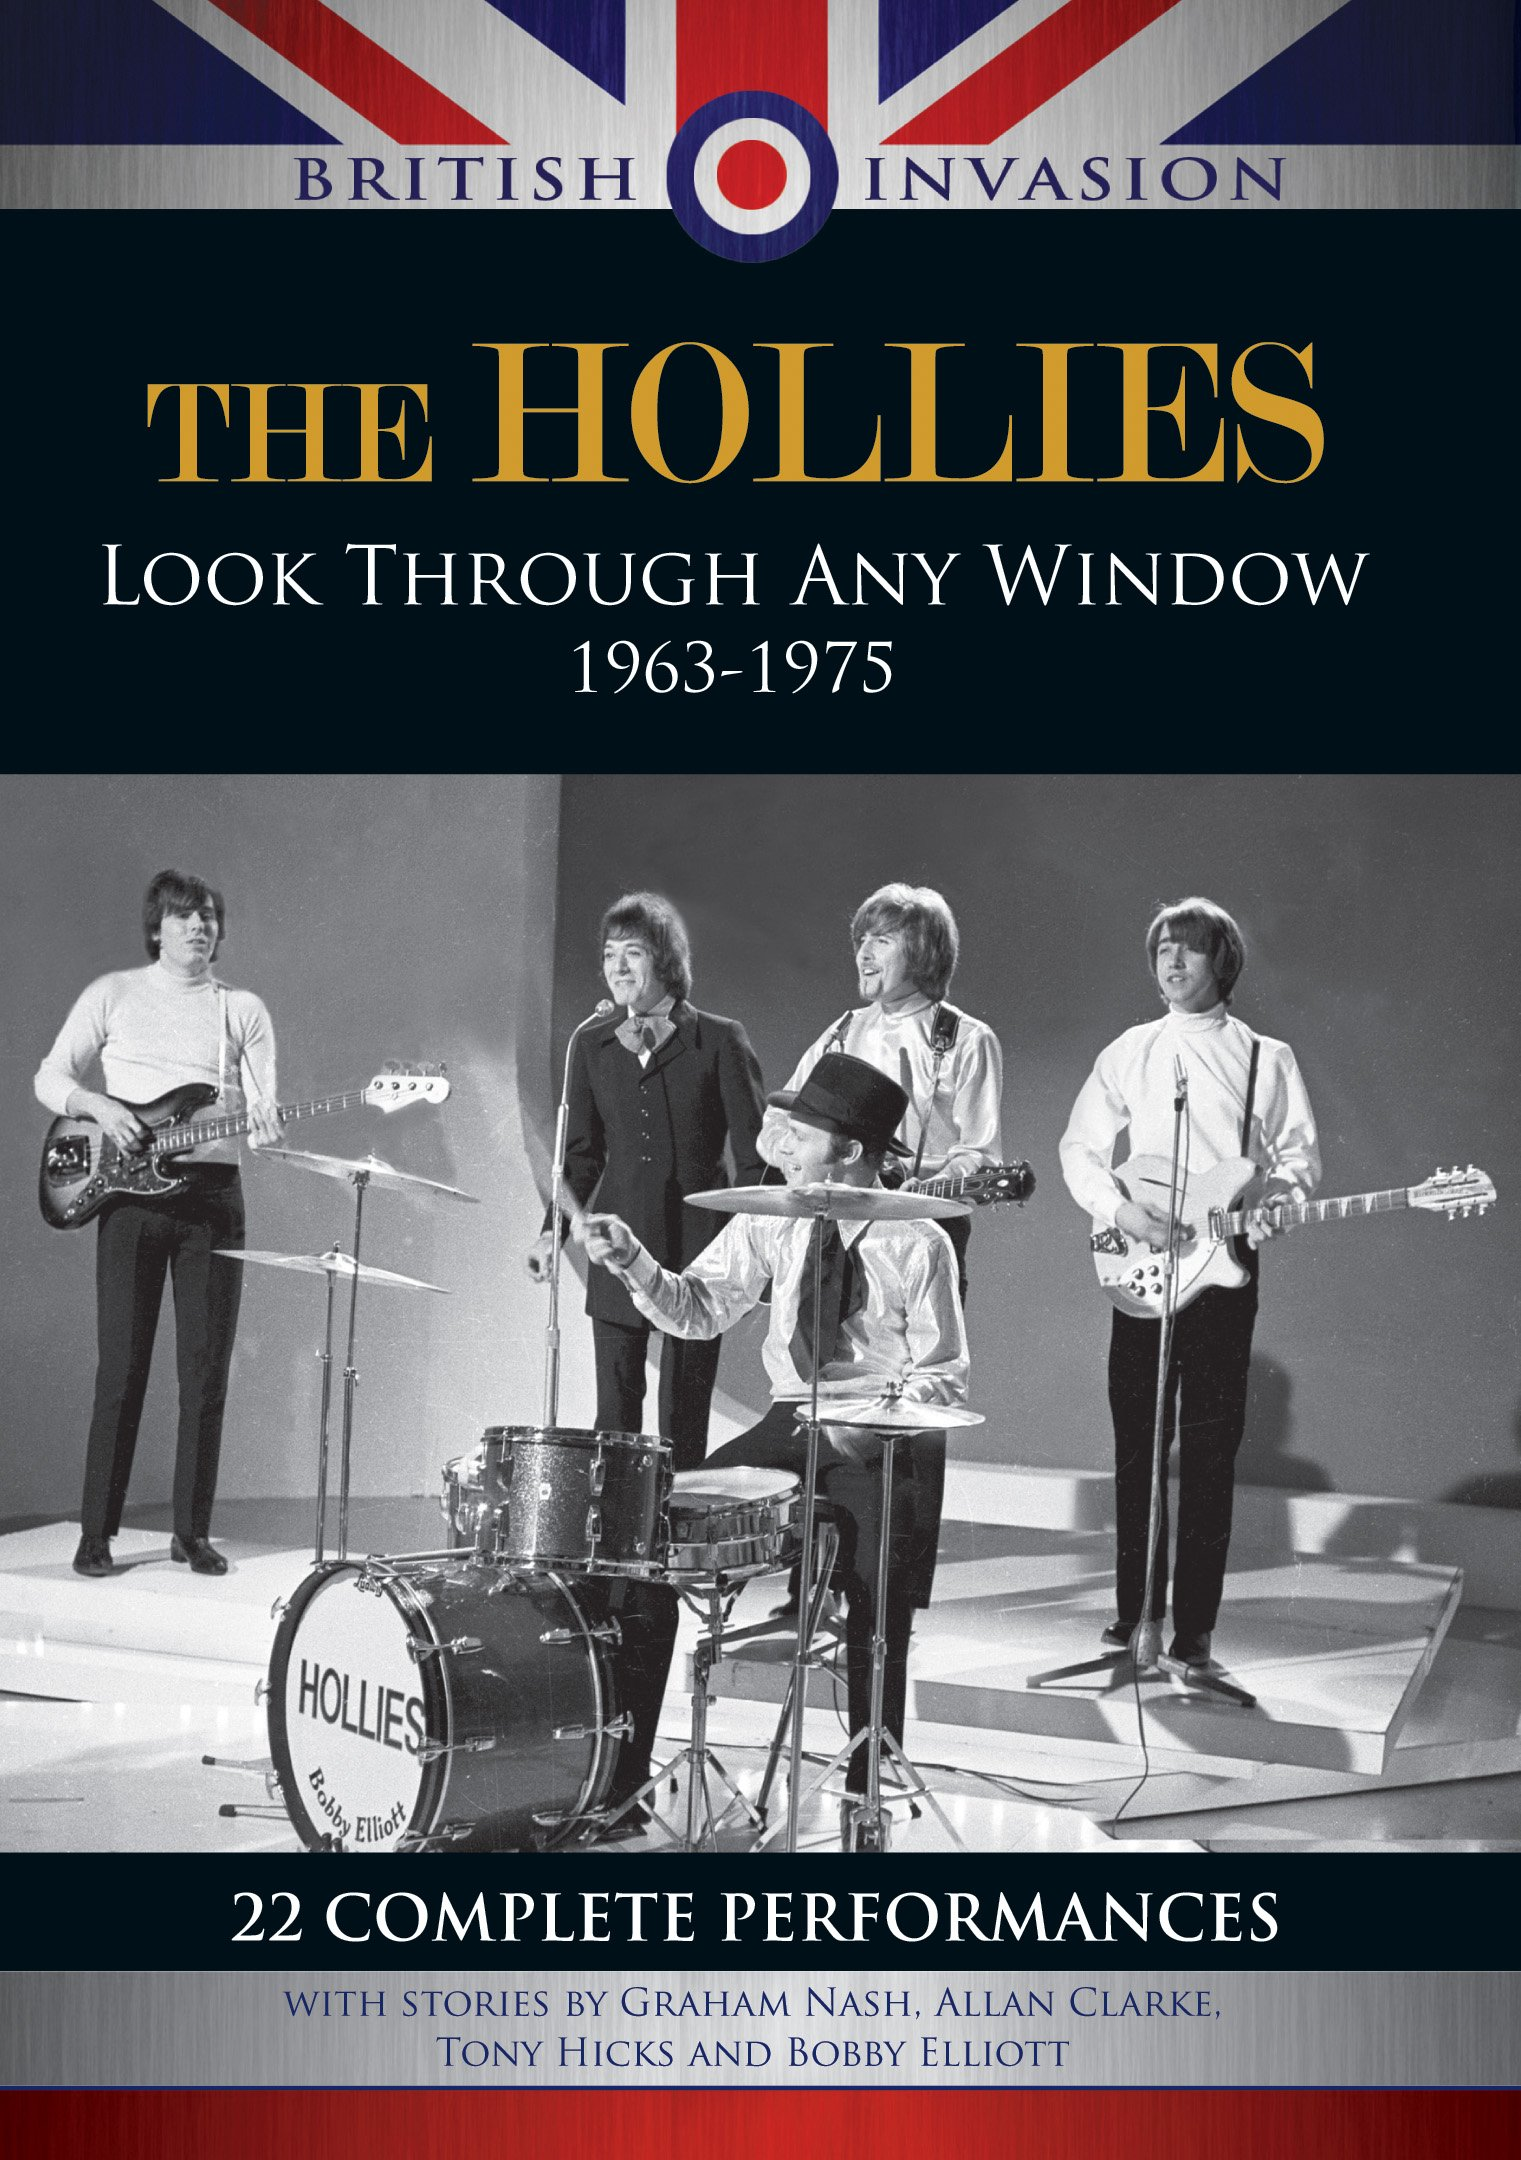 DVD : The Hollies - The Hollies: Look Through Any Window 1963-1975